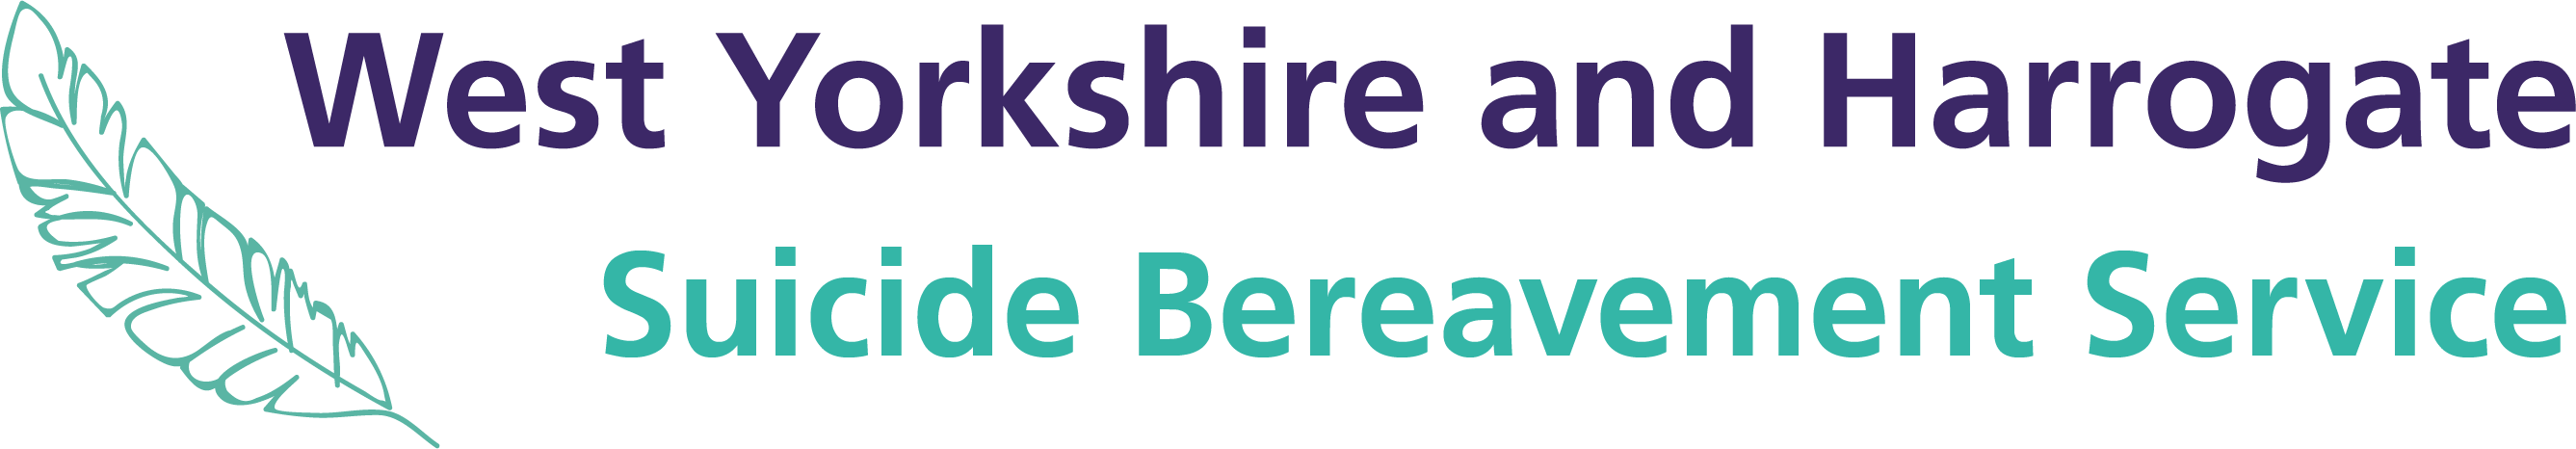 West Yorks & Harrogate Suicide Bereavement Service